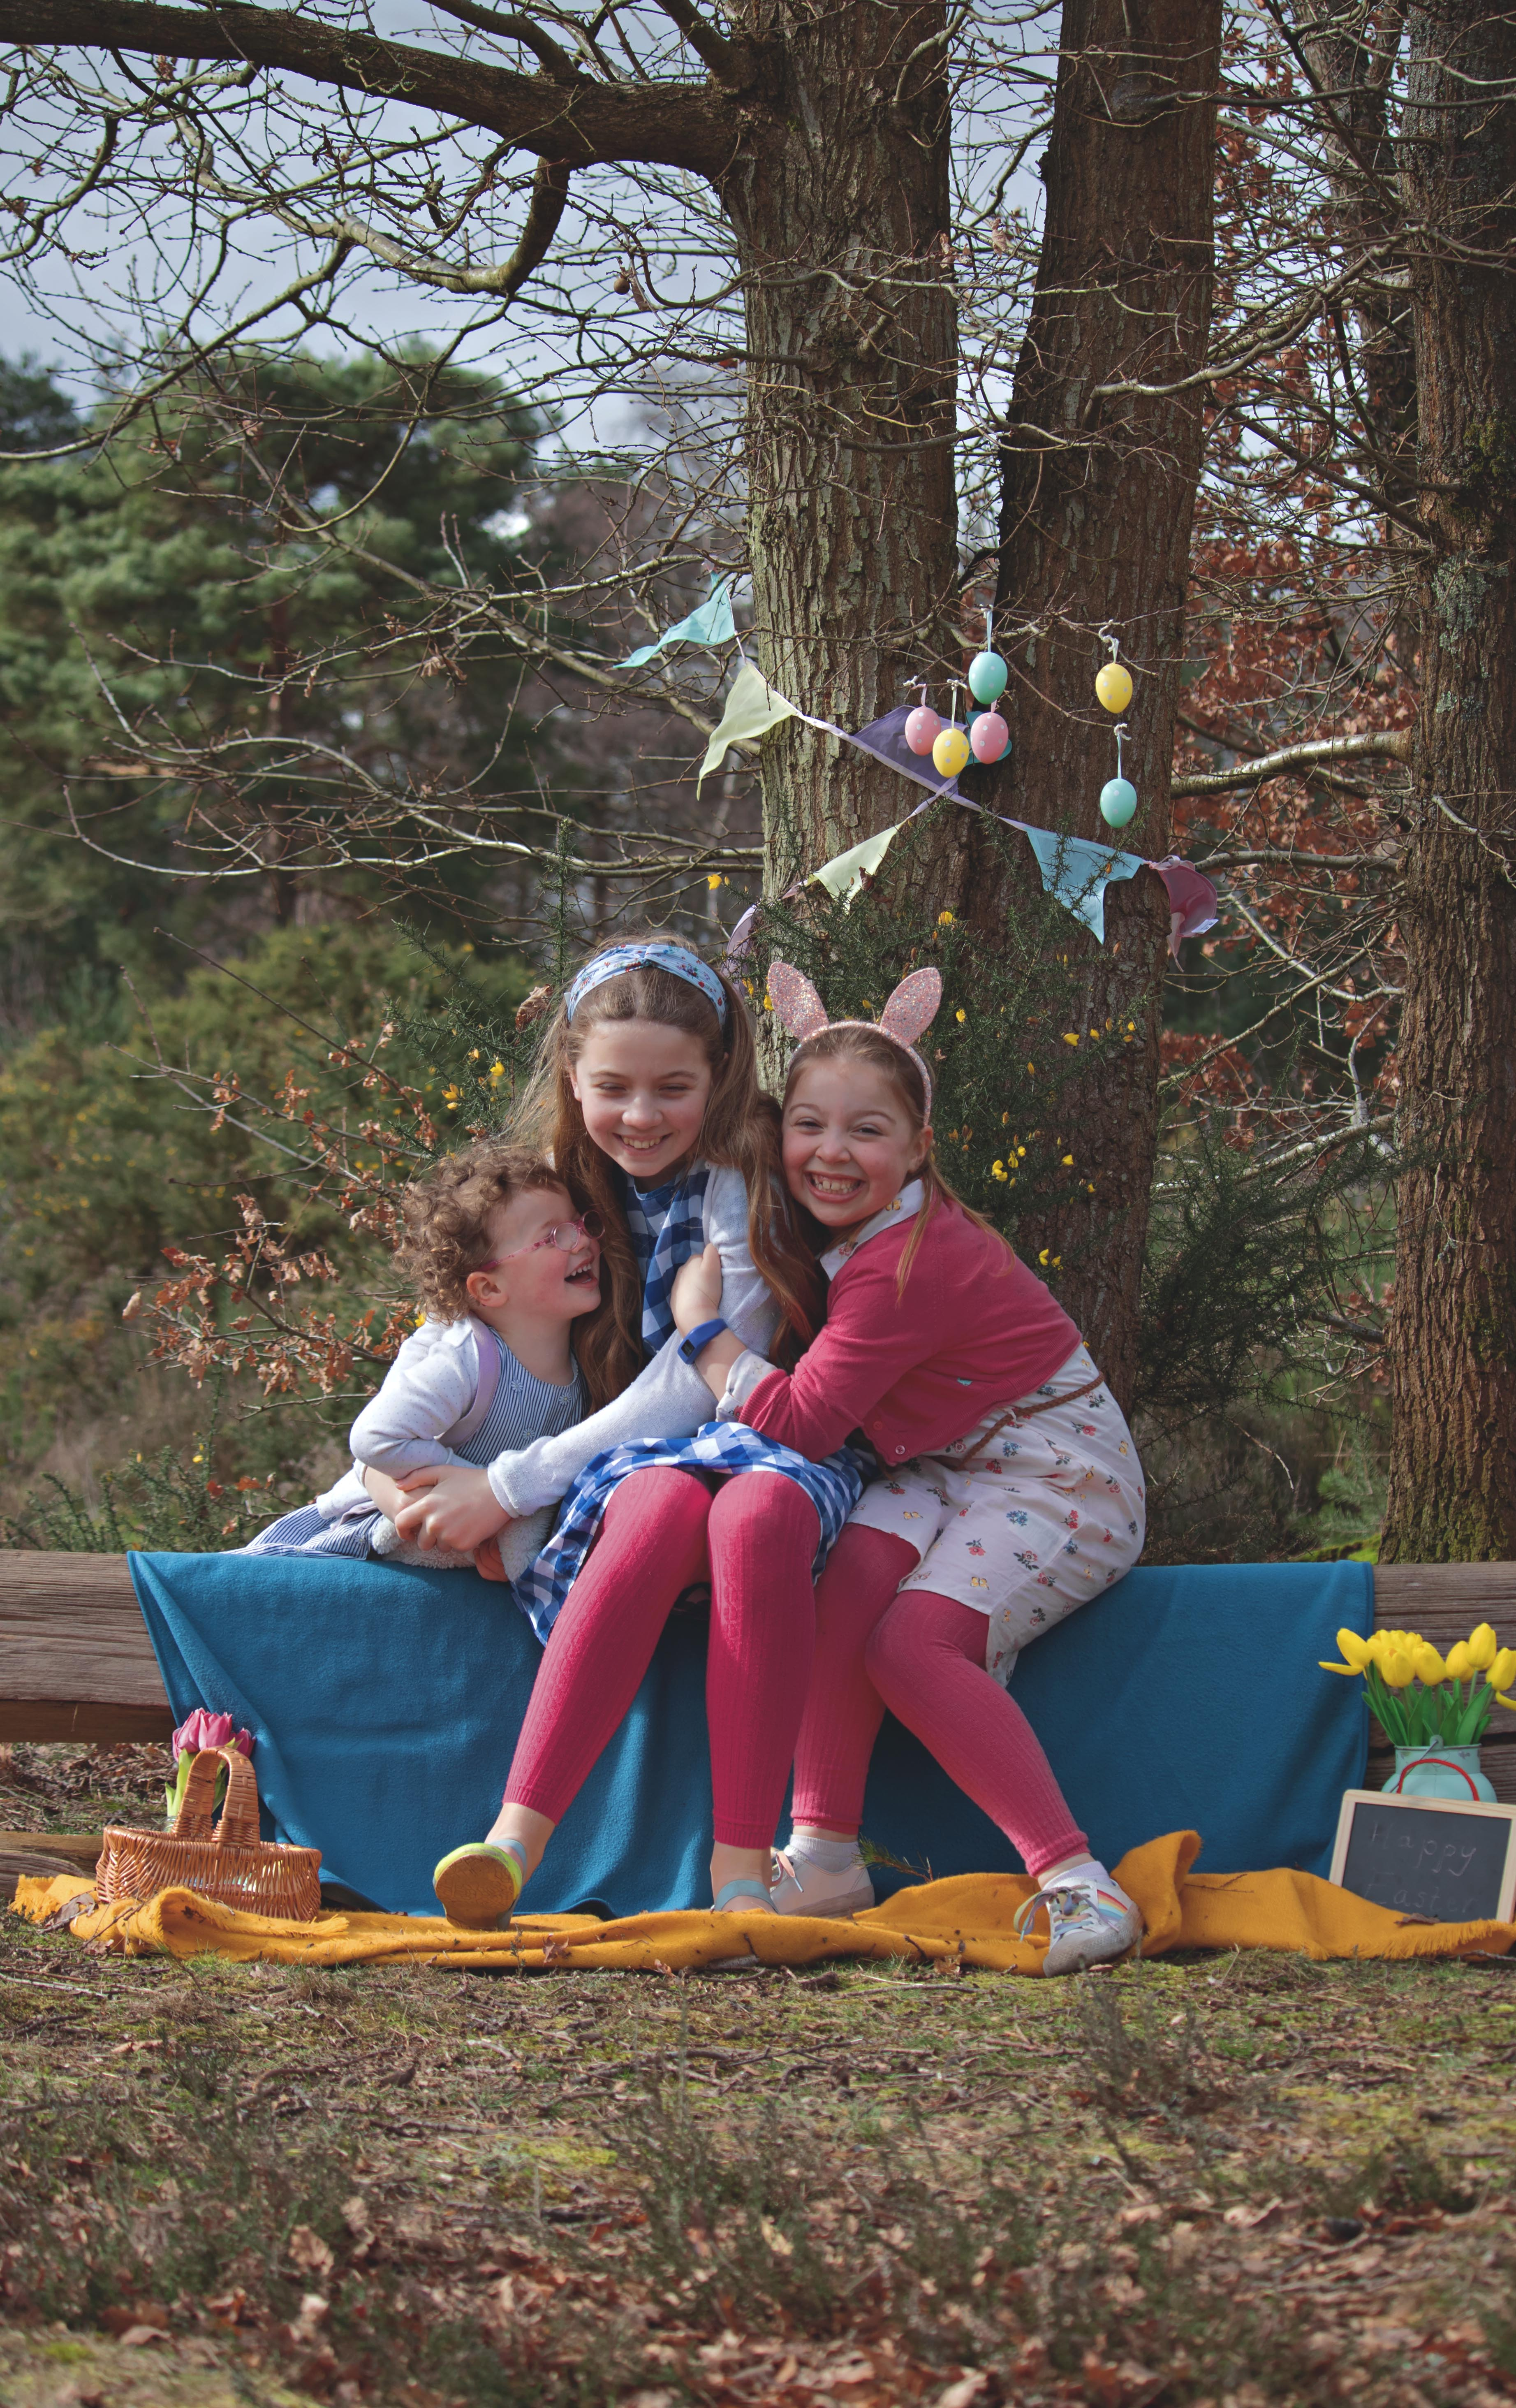 Documentary Family Portraits at Easter Time in Surrey